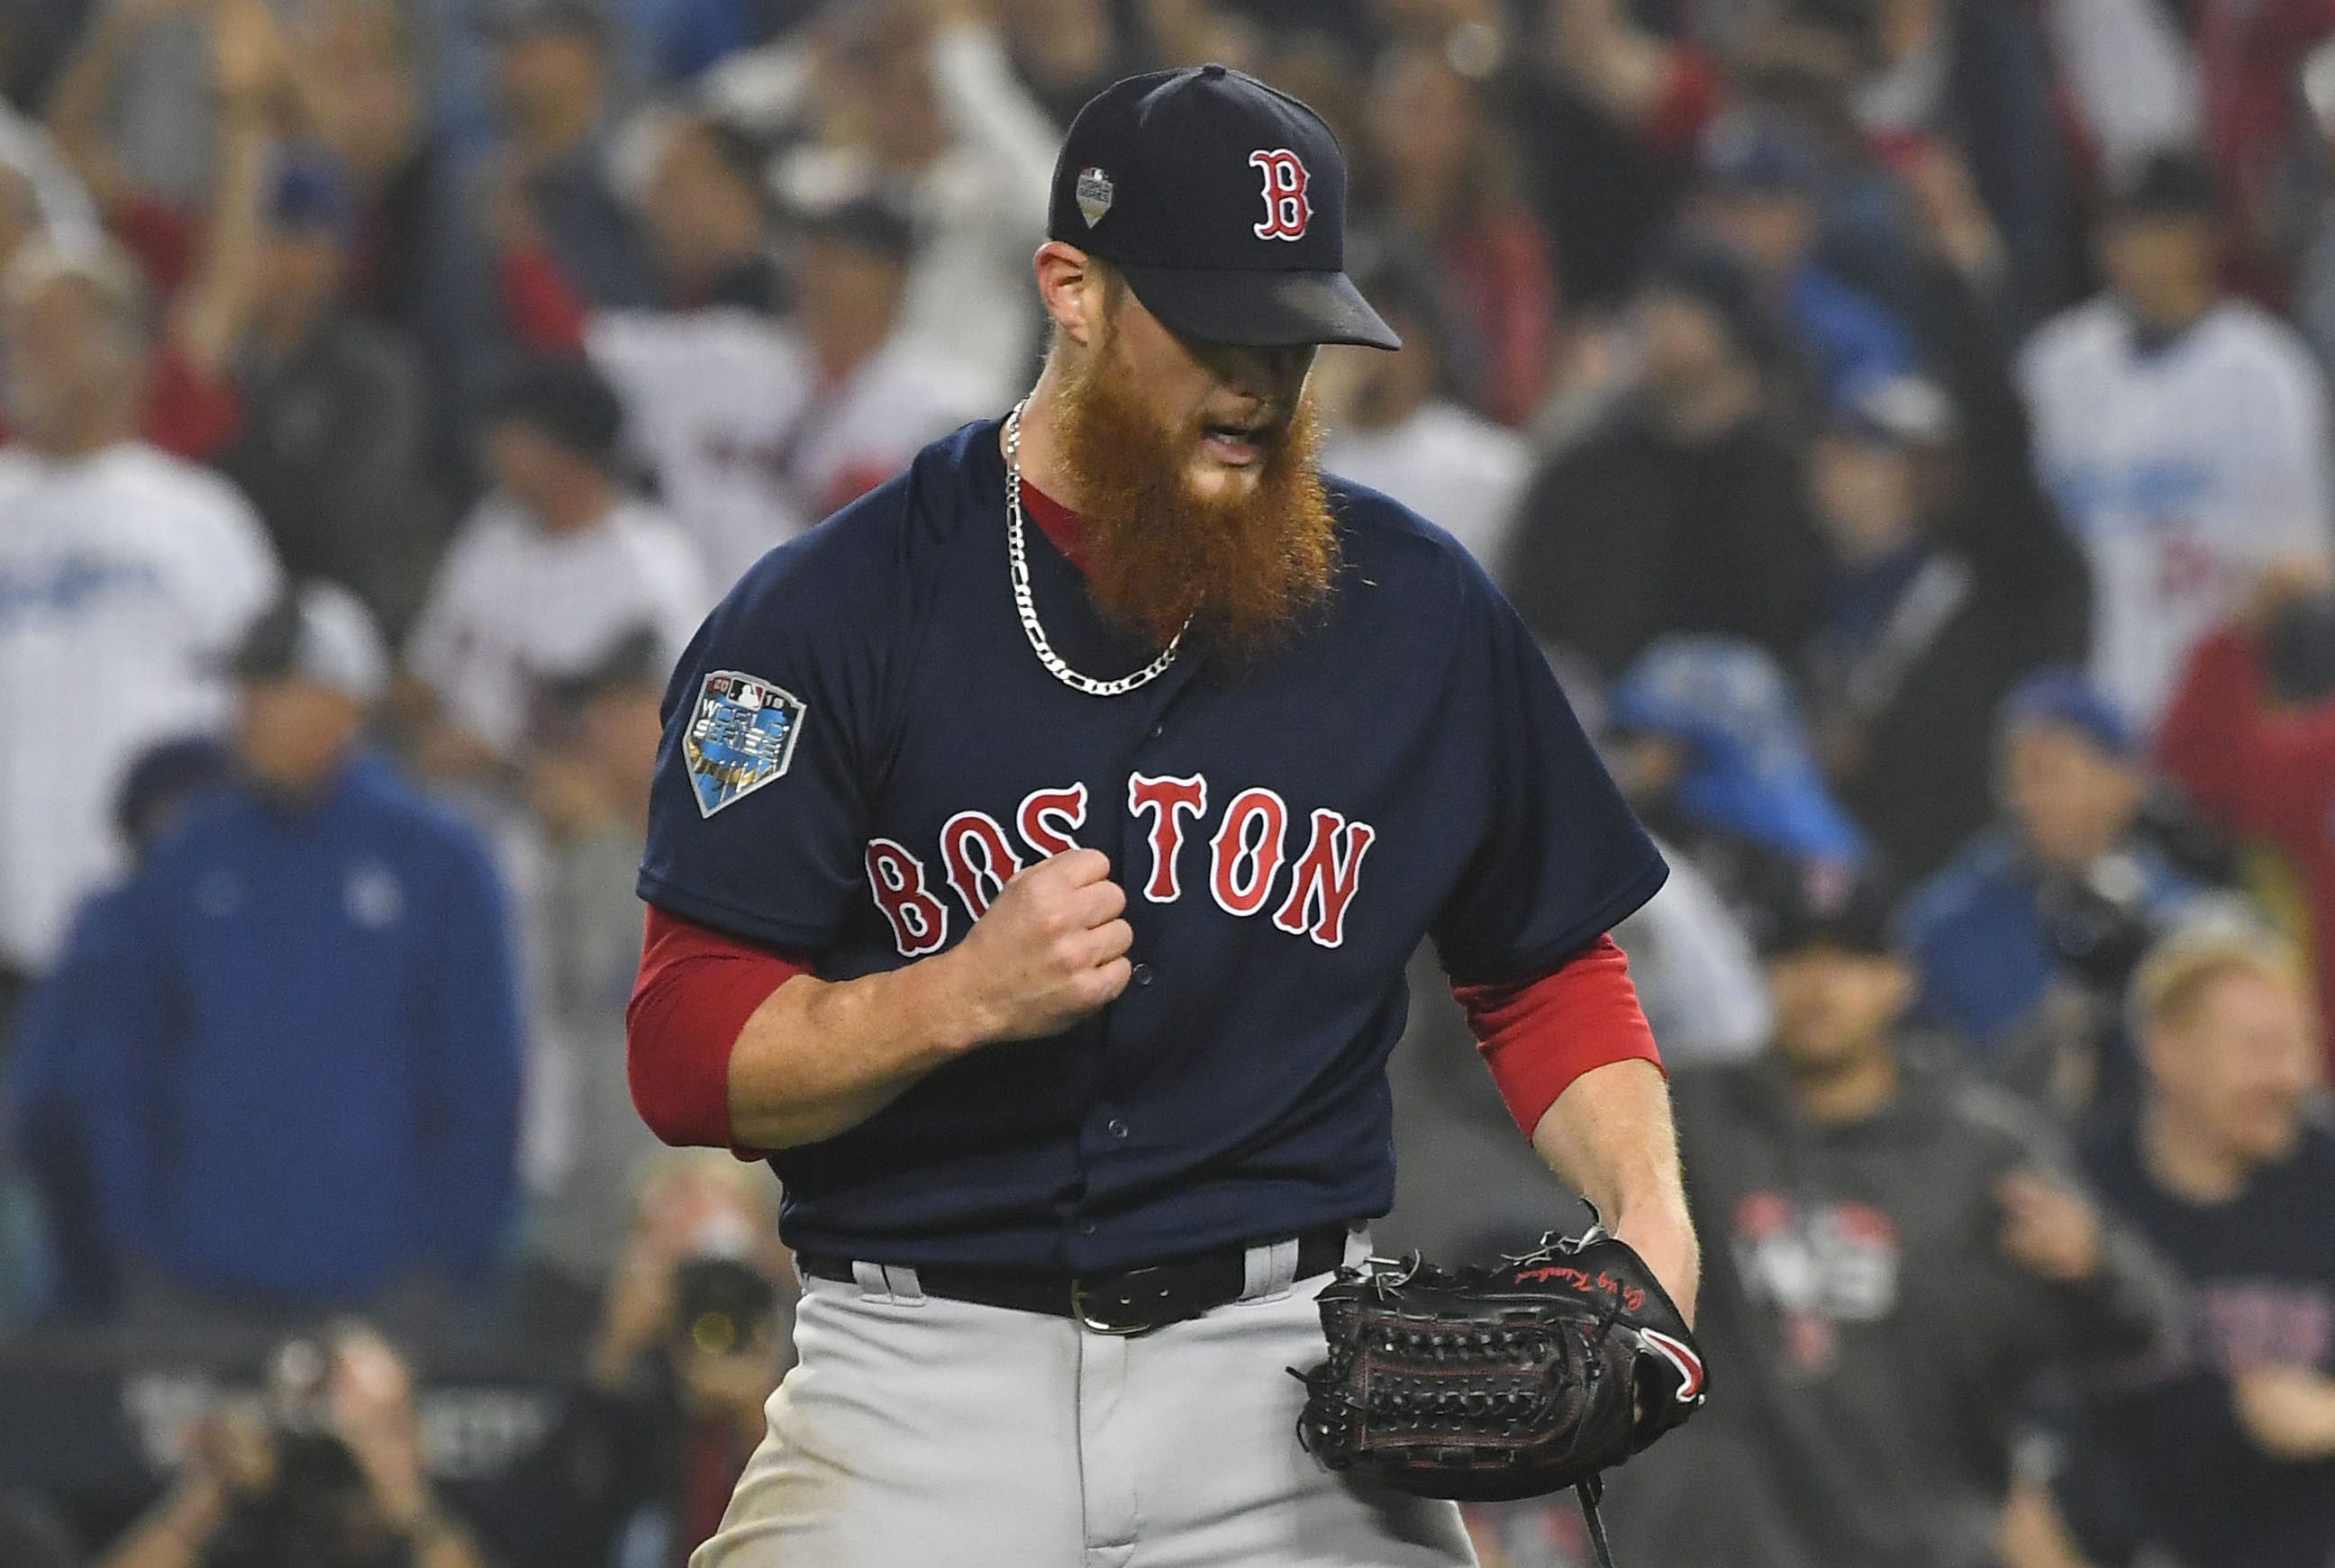 Kimbrel saved 42 games for the Red Sox in 2018.